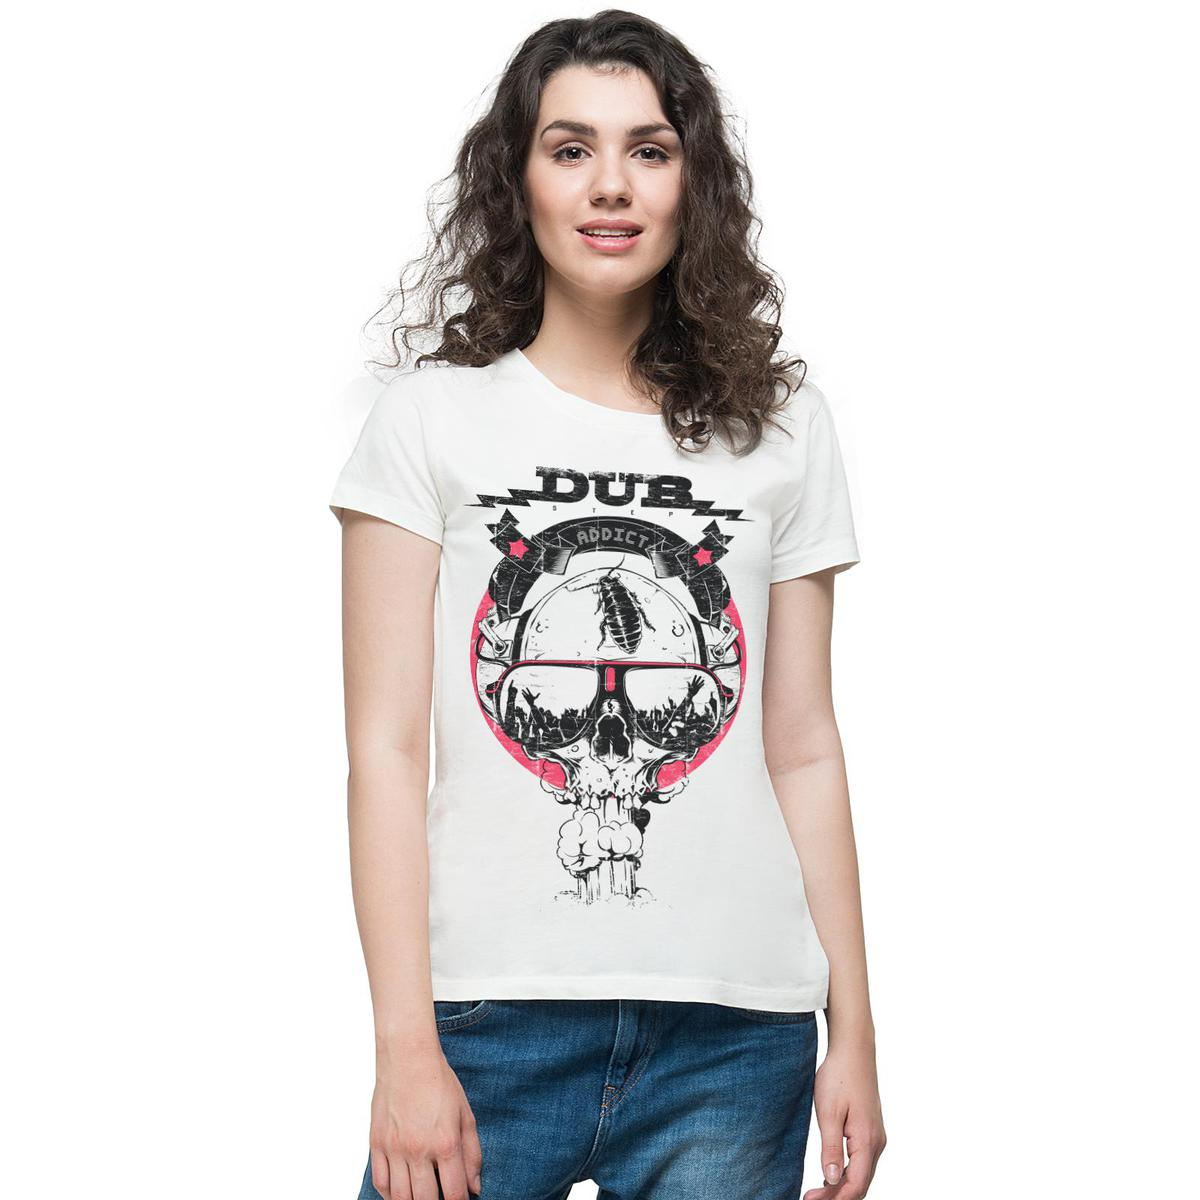 THREADCURRY - White Colored Dub Addict | DJ Music Party Cool Dubstep Dubsmash Cotton Printed Creative T-shirt for Women